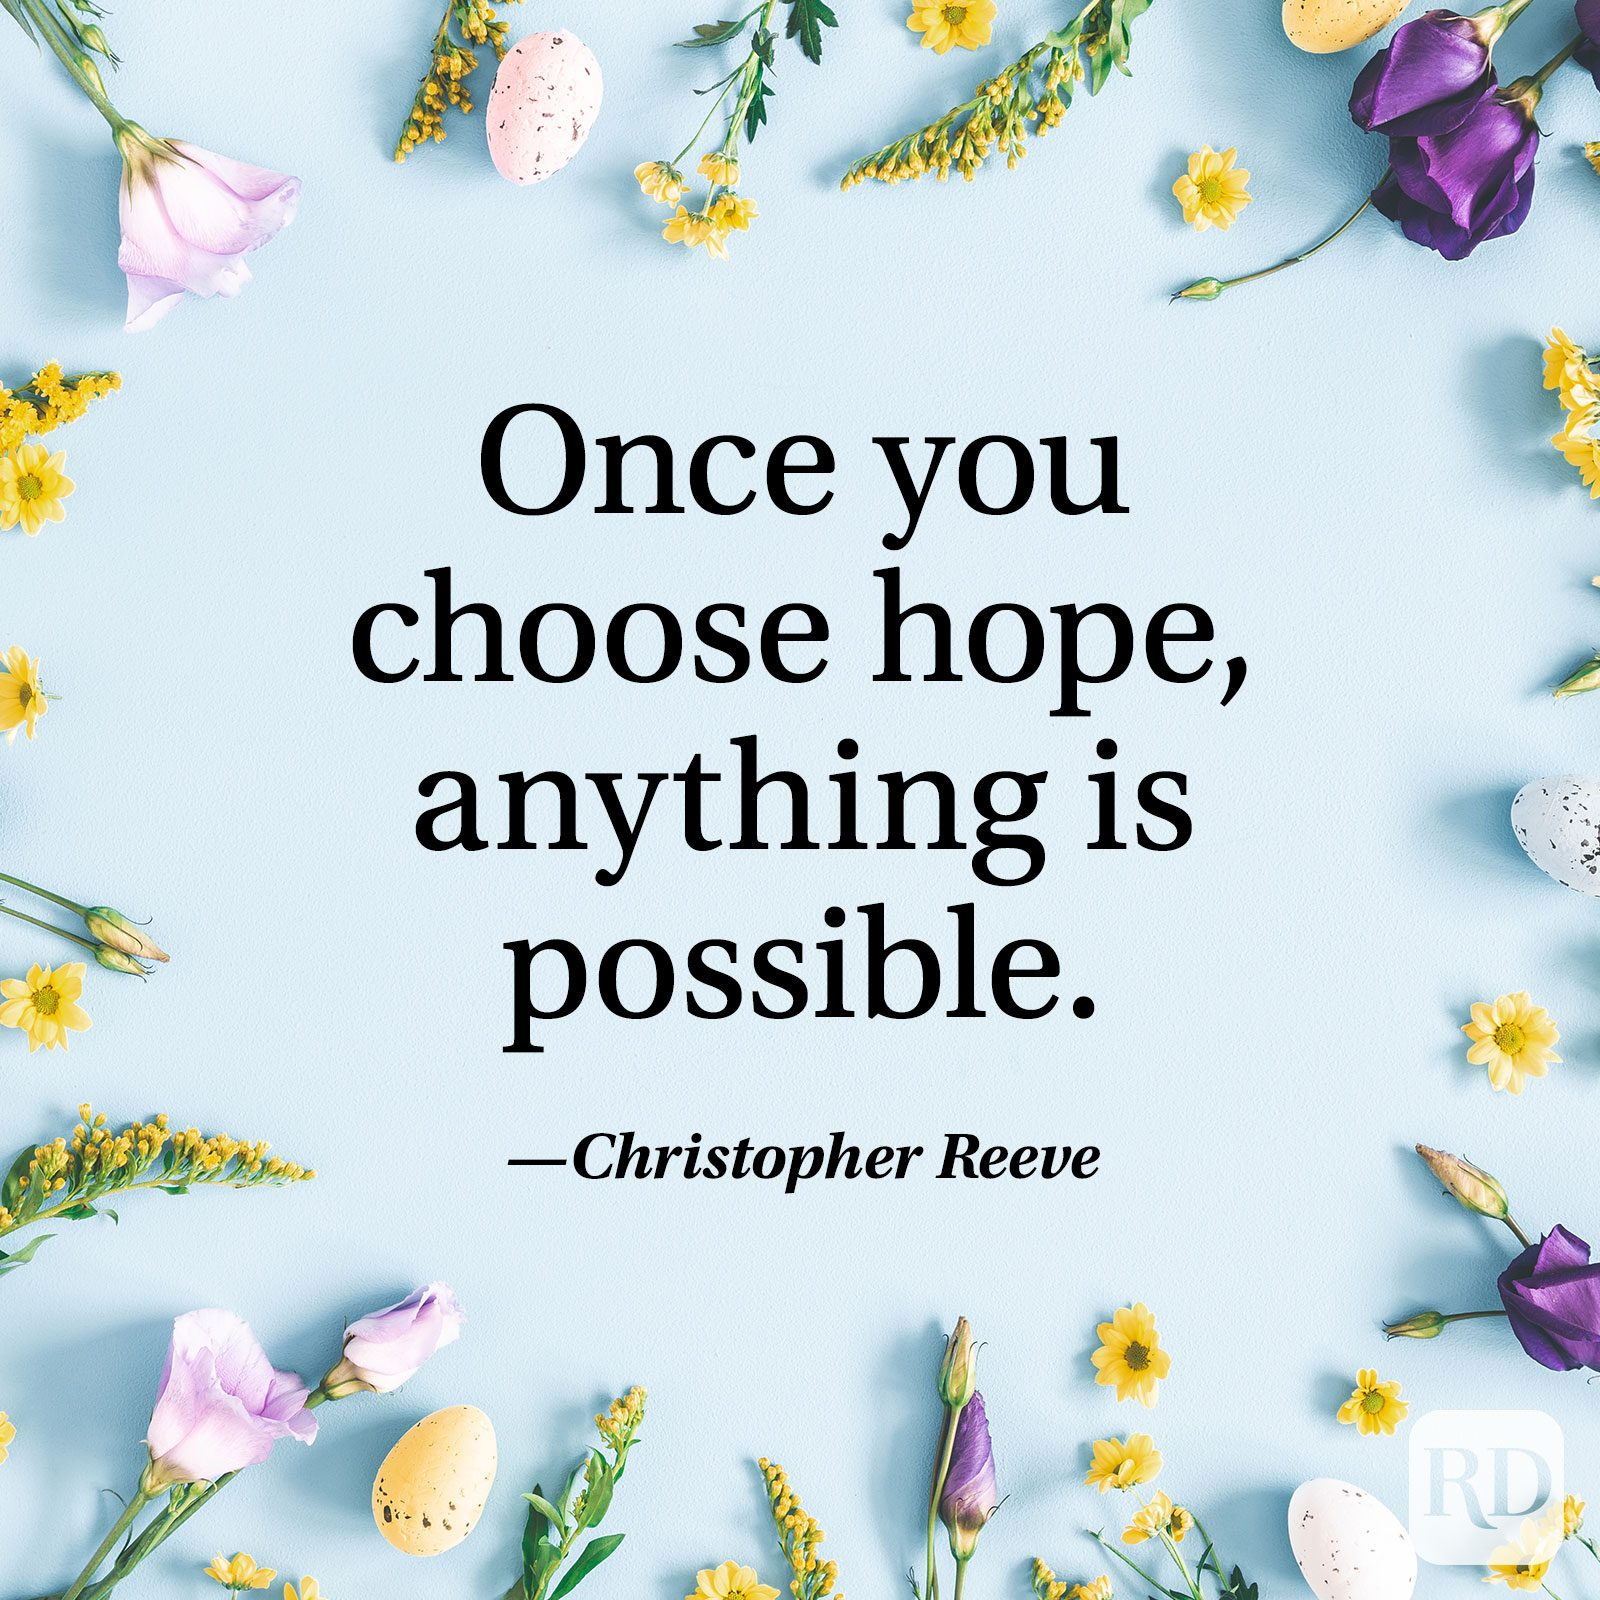 """Once you choose hope, anything is possible."" — Christopher Reeve"